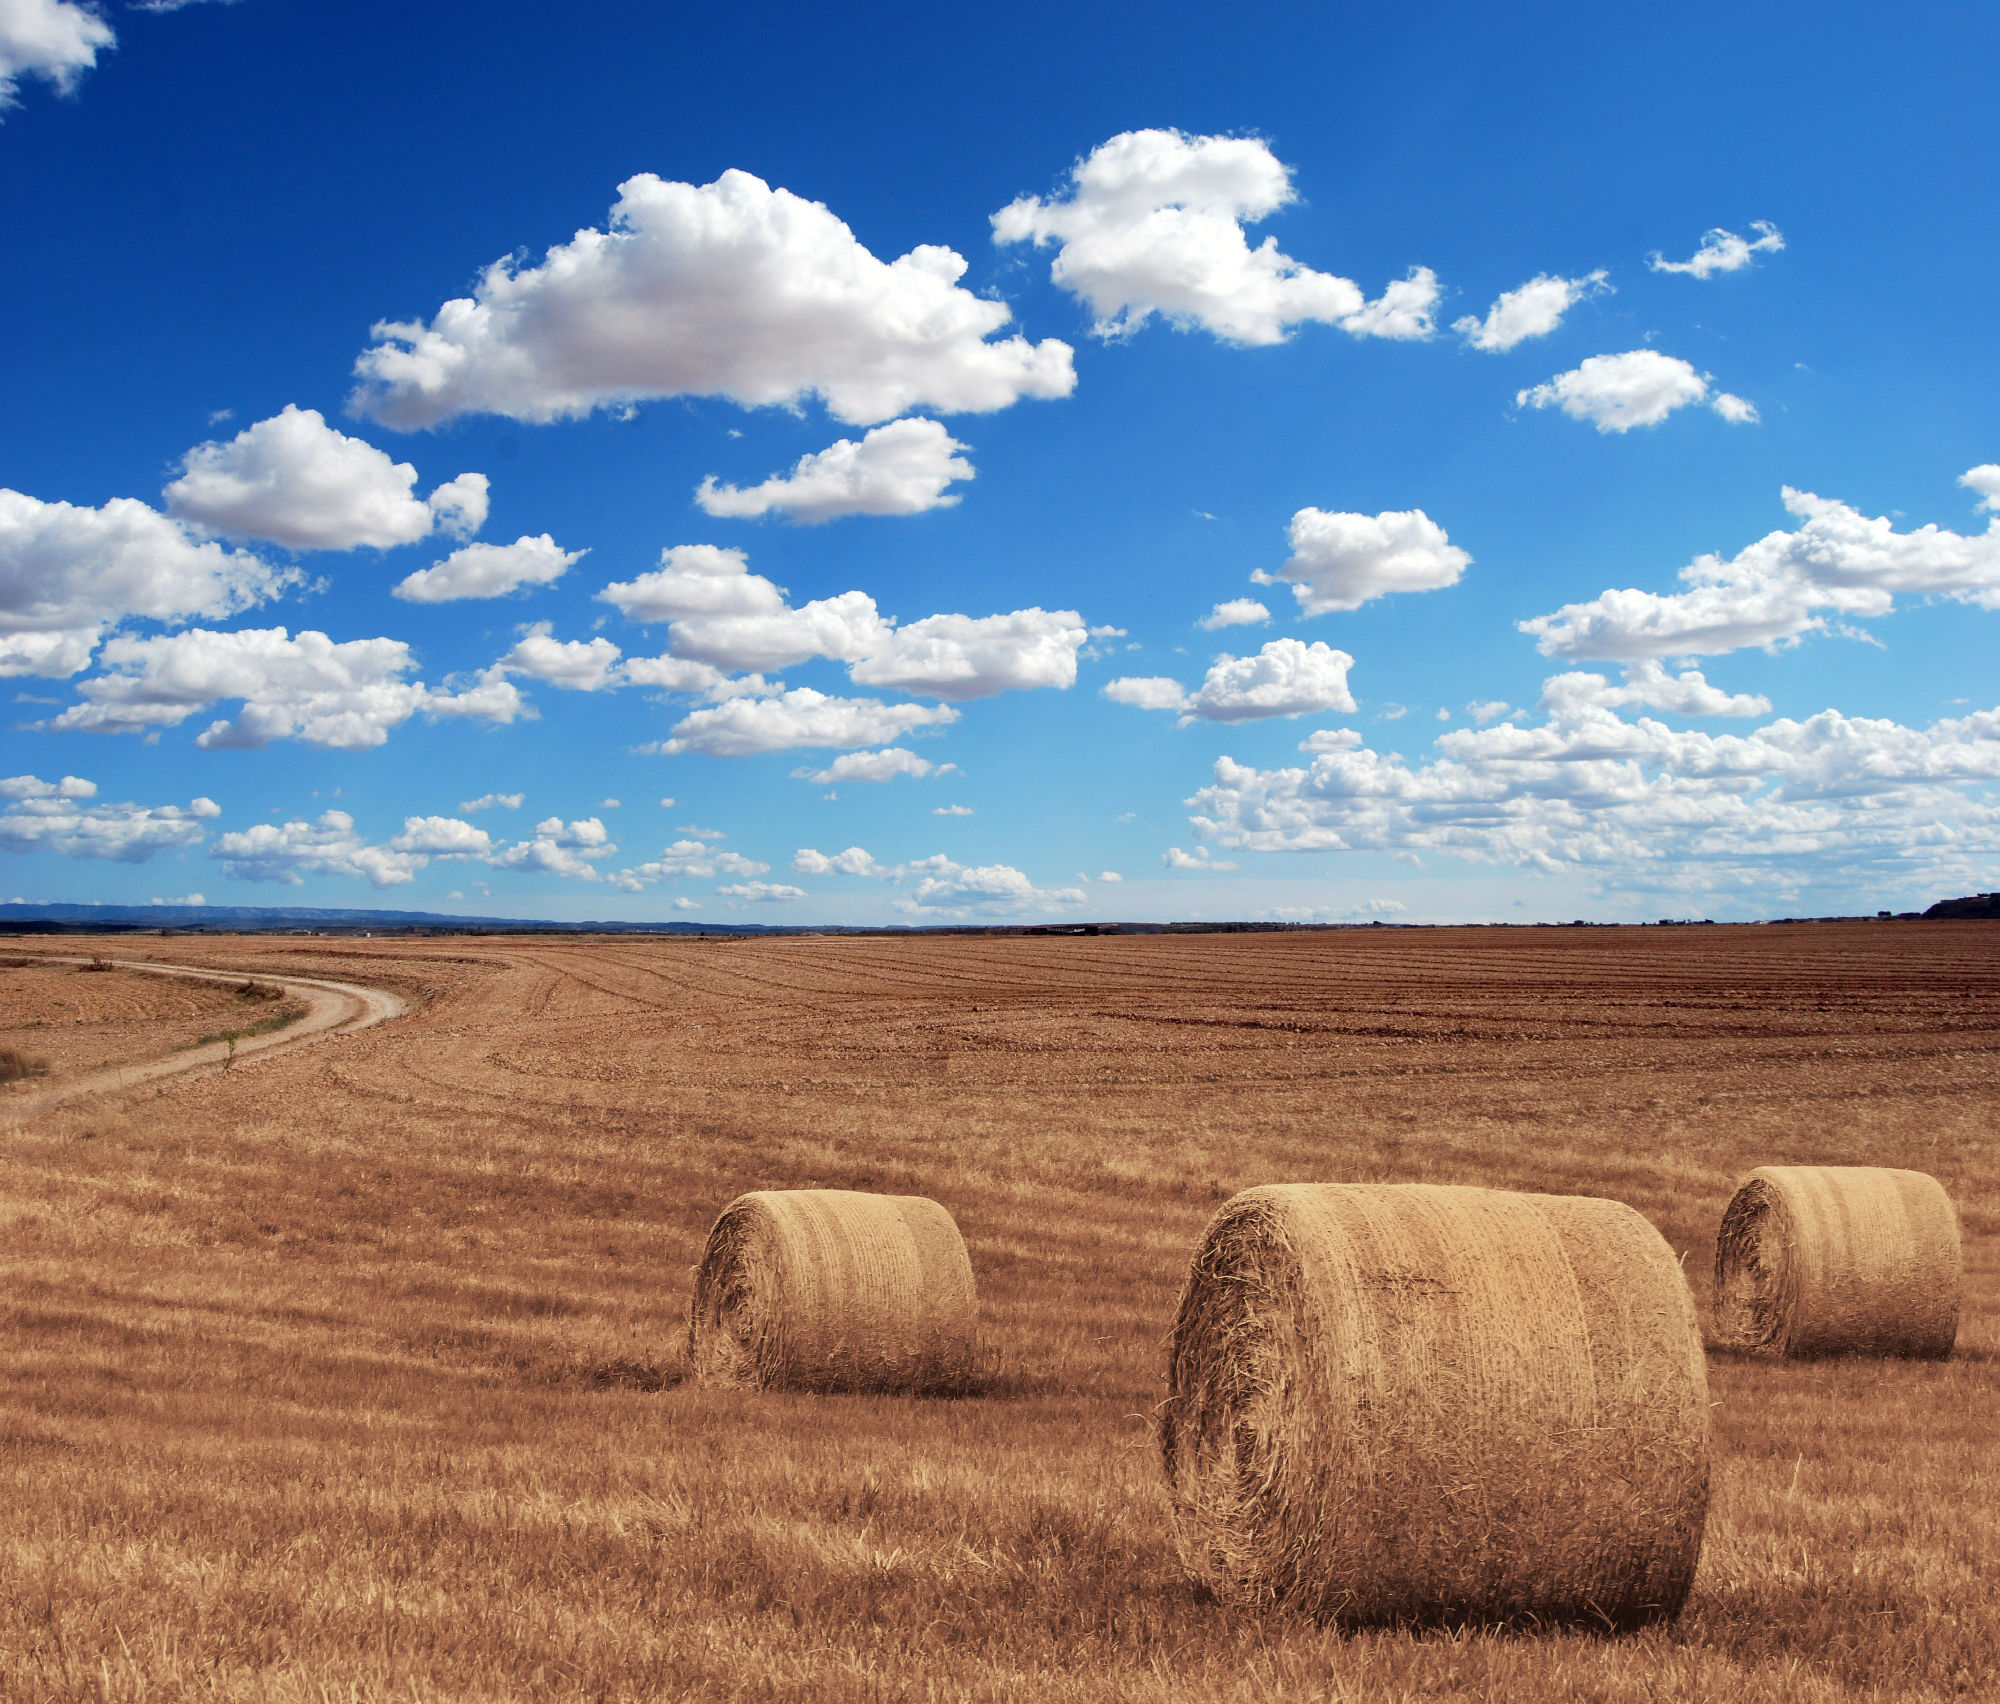 Farm Land with Hay and Blue Sky